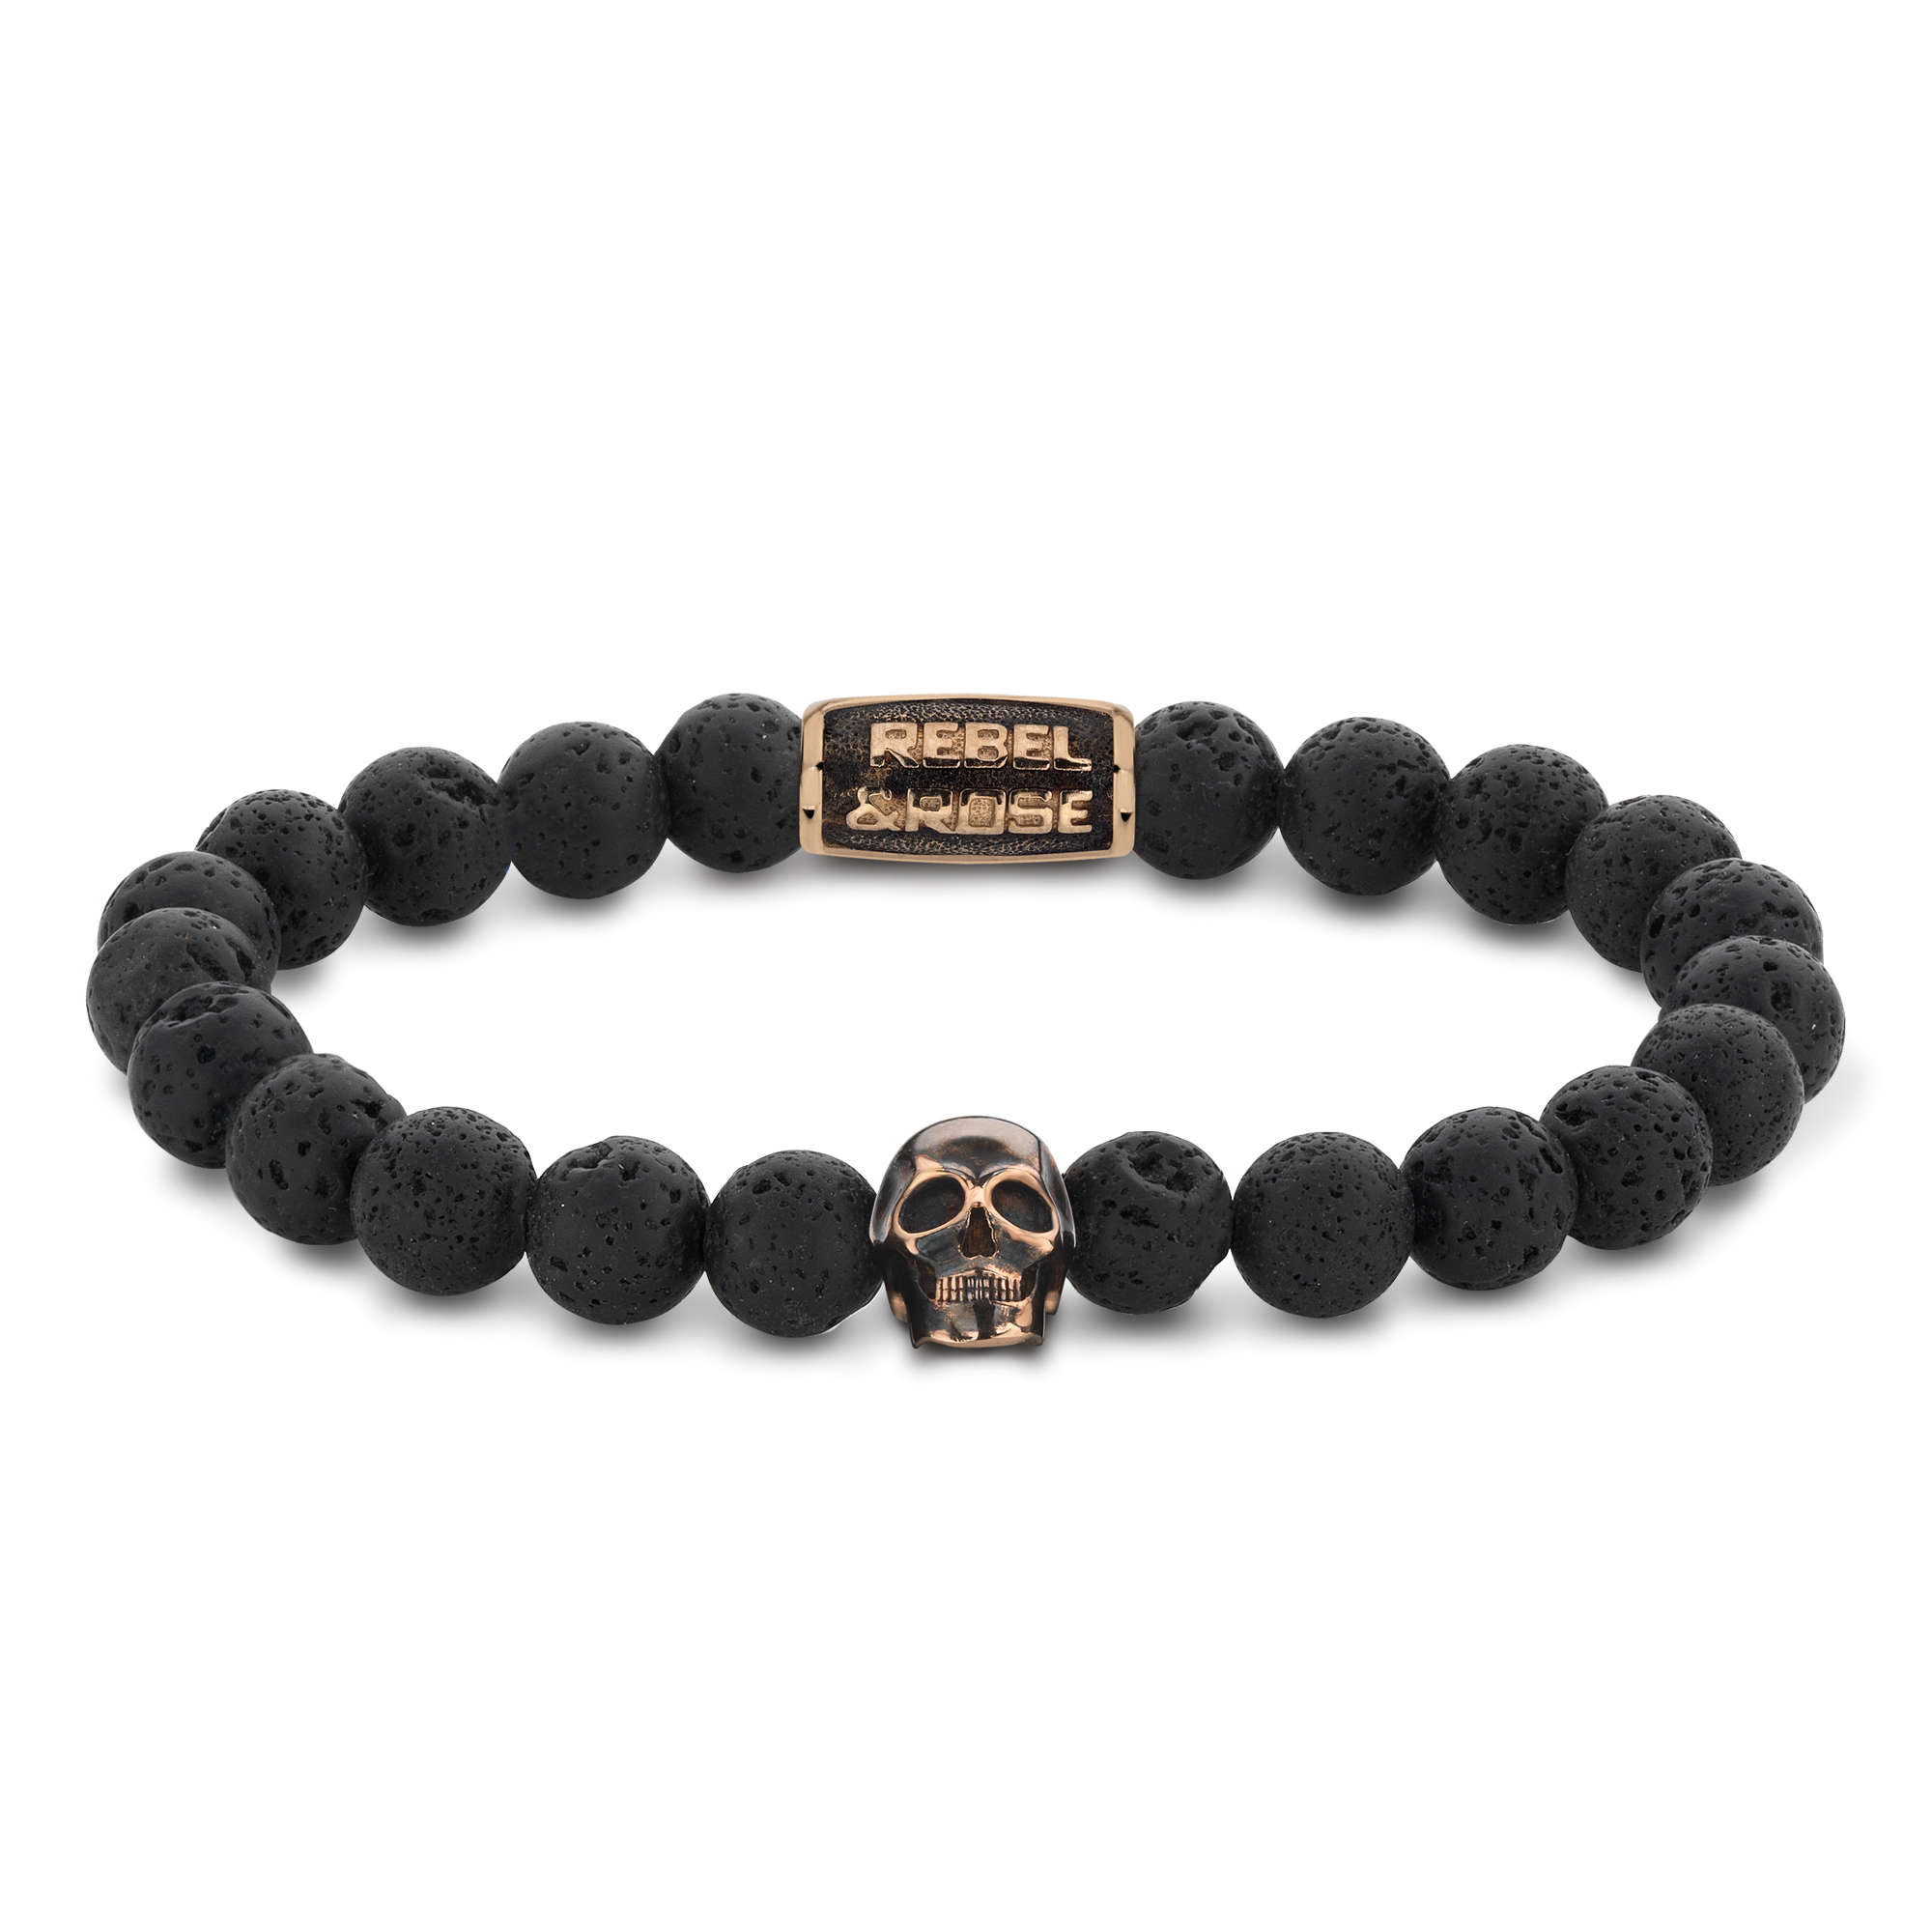 Rebel and Rose RR-SK003-R-S Armband Skull Black Moon rose gold plated S 8mm 16.5